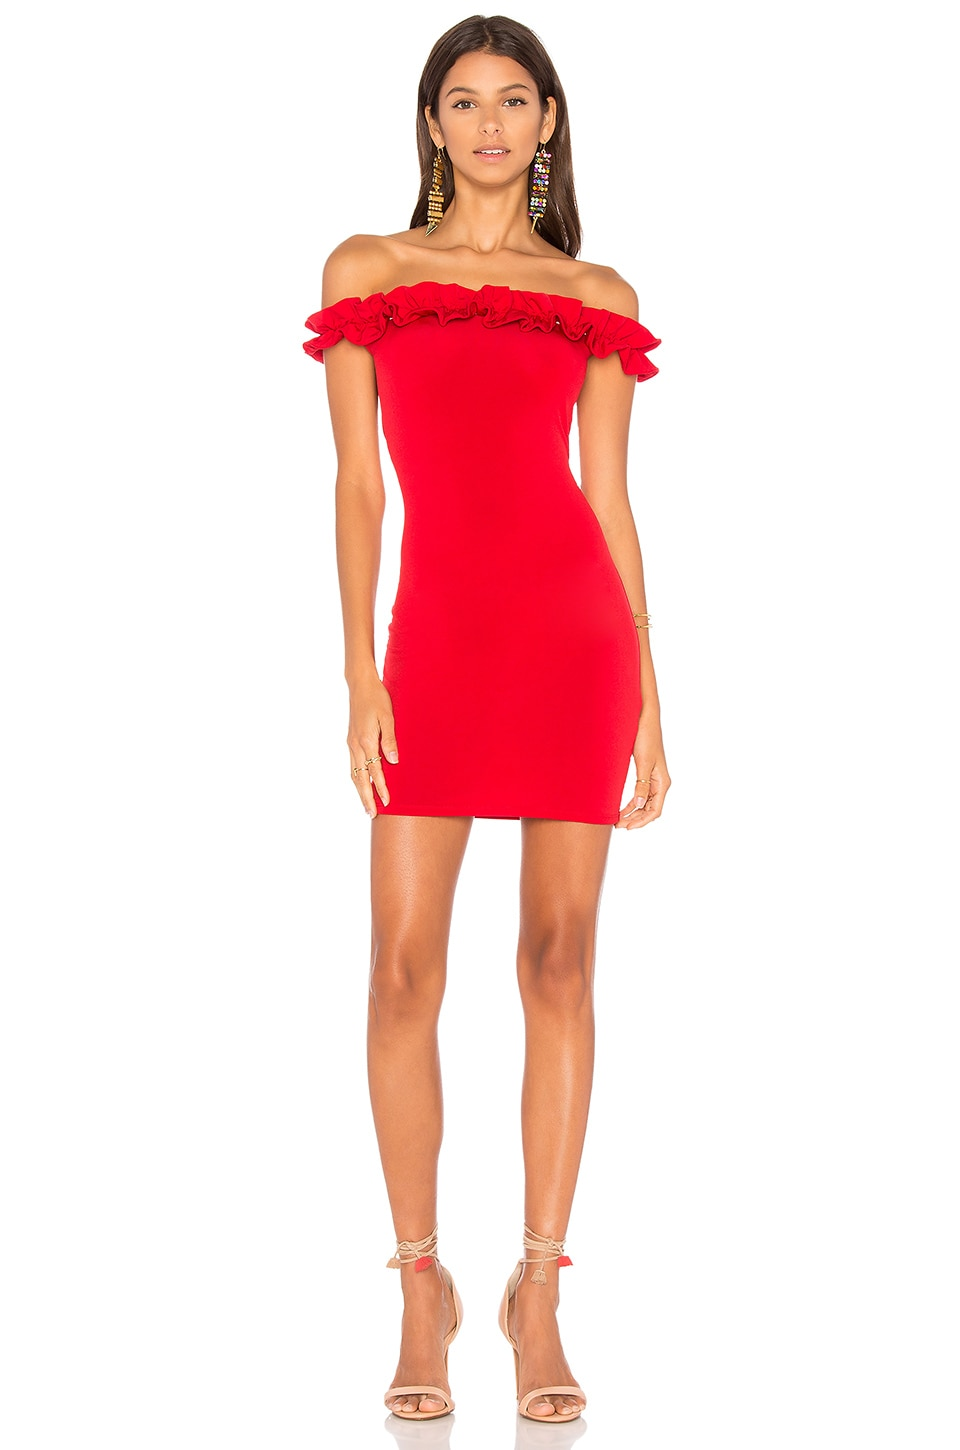 Motel Rizma Dress in Red